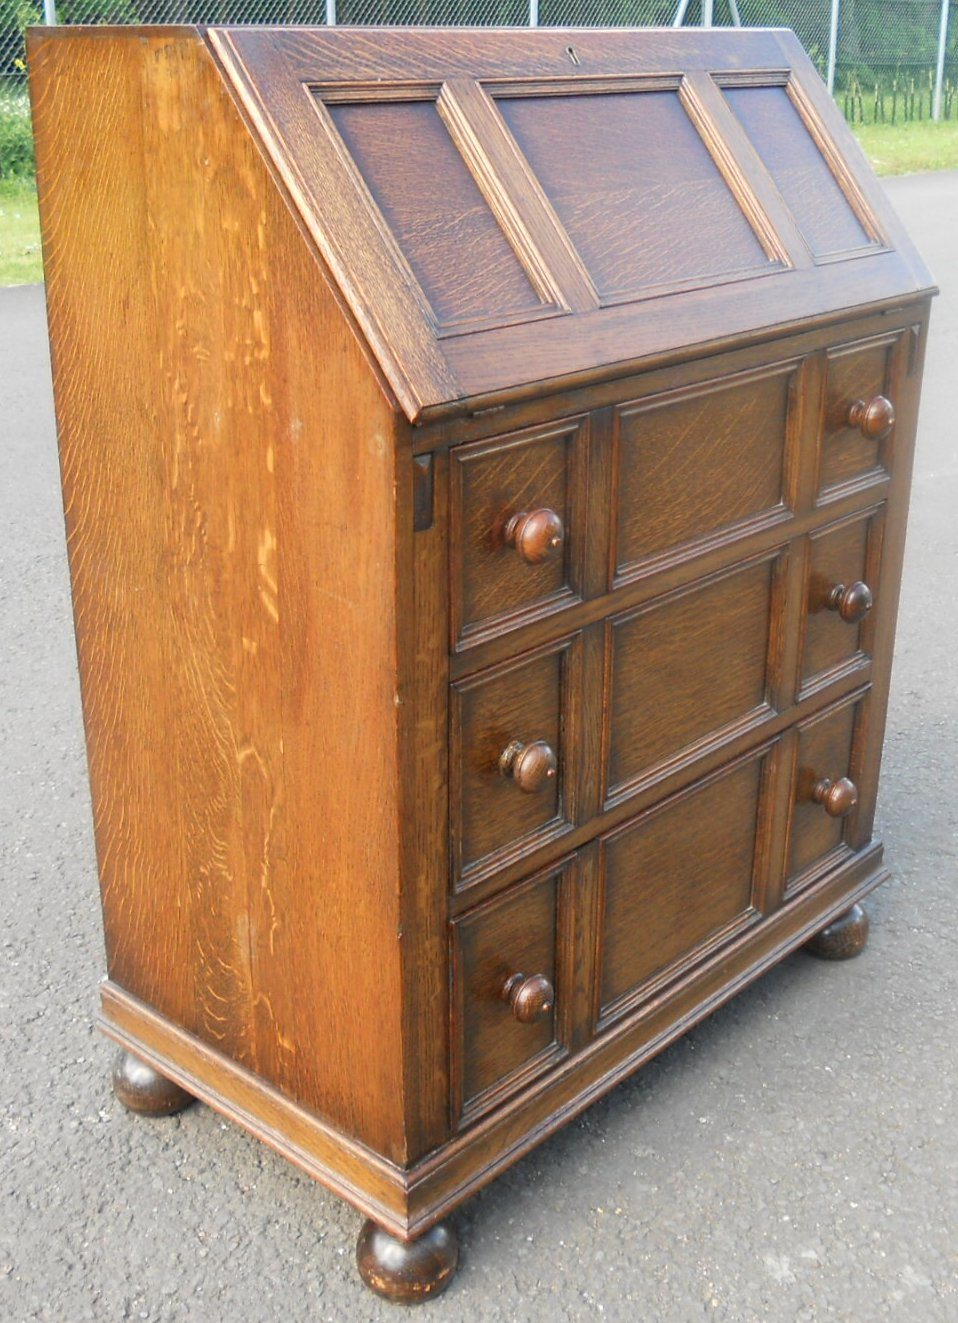 oak jacobean style writing bureau sold. Black Bedroom Furniture Sets. Home Design Ideas